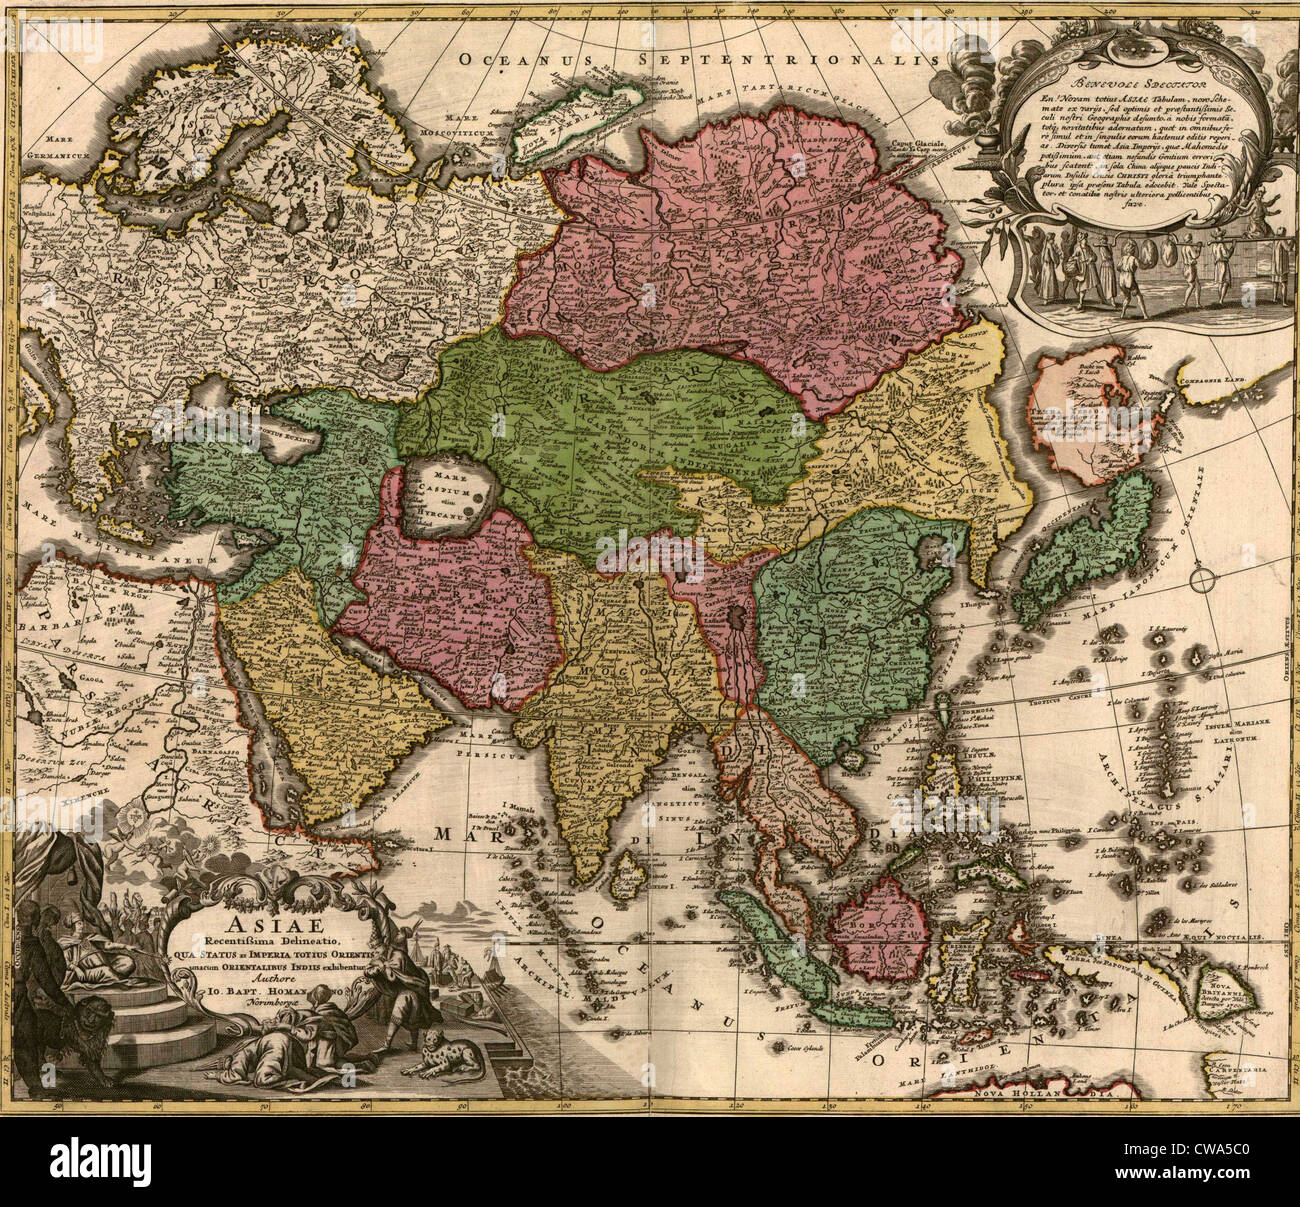 1724 map of Asia and islands of the East Indies. Central and Western Asia are occupied by Tatars. - Stock Image